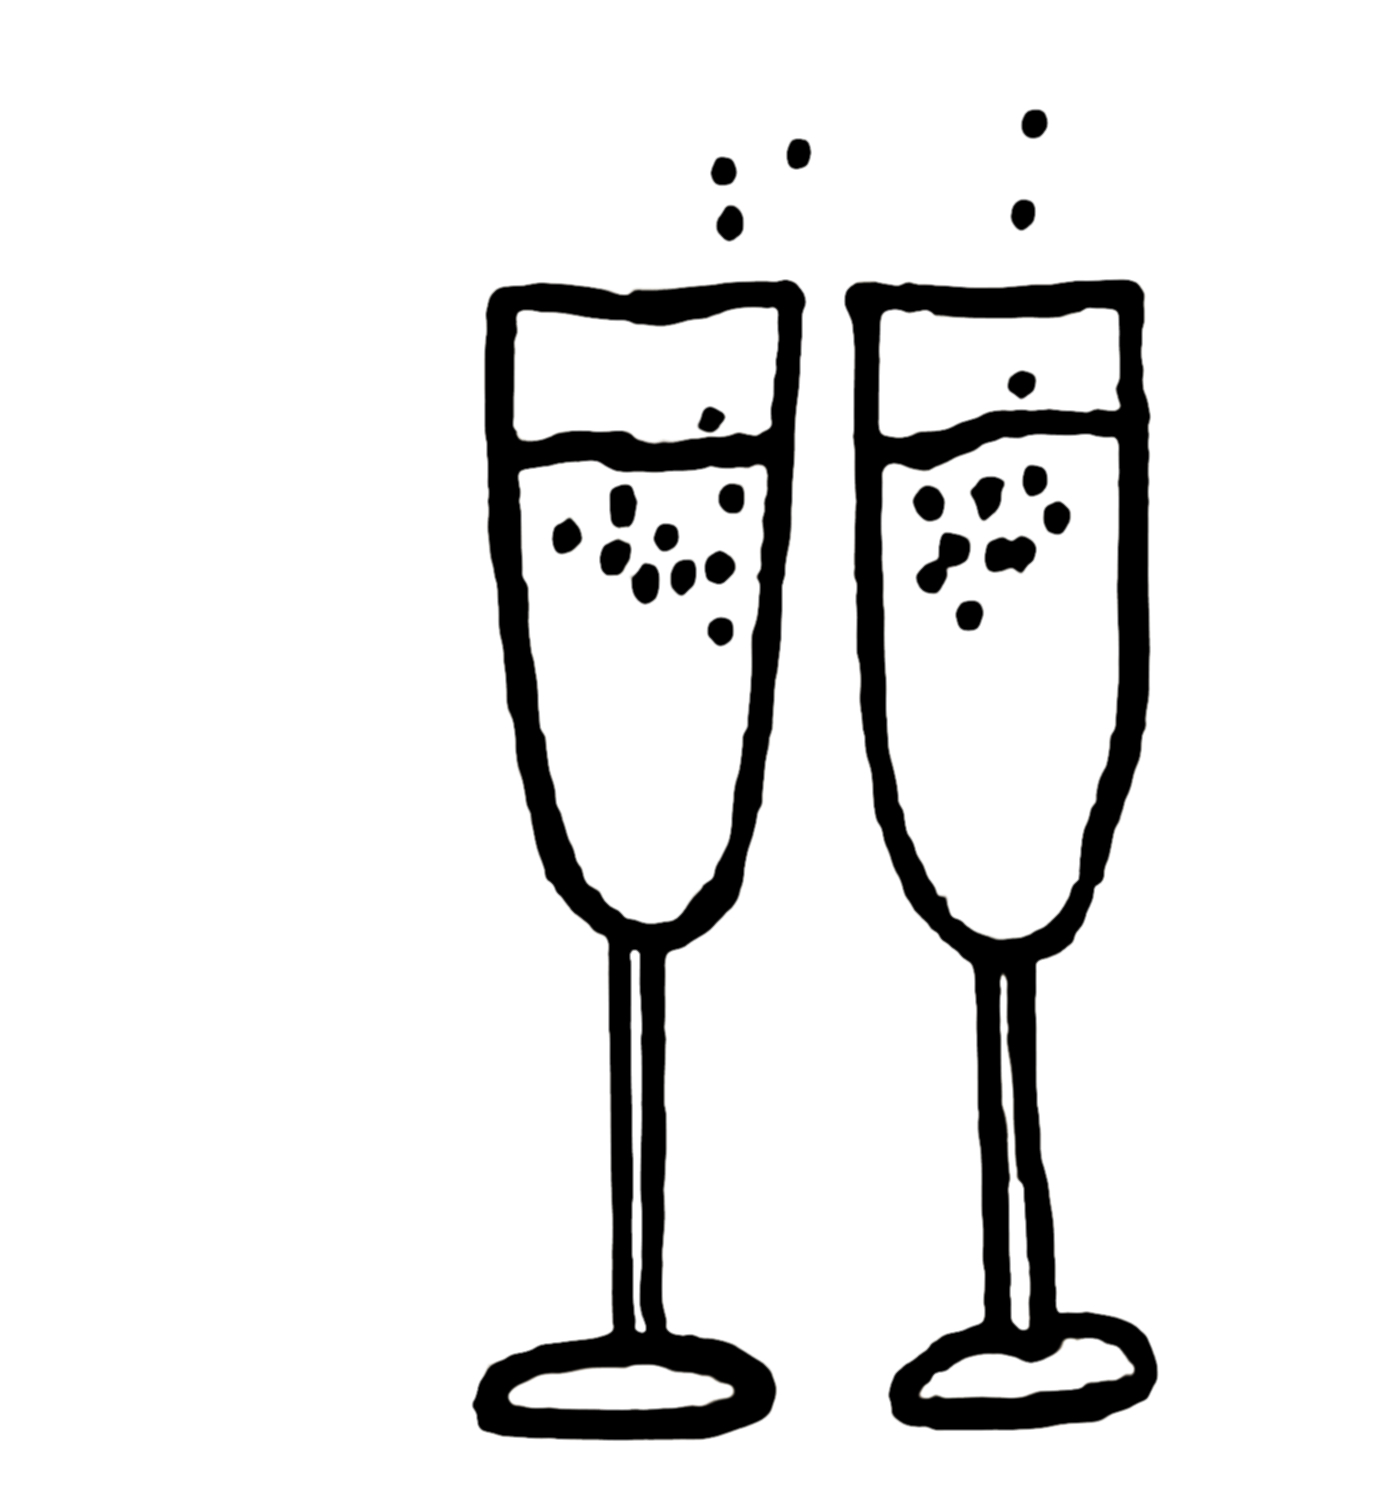 Champagne glasses clipart pictures banner free Free Champagne Glass Images, Download Free Clip Art, Free Clip Art ... banner free